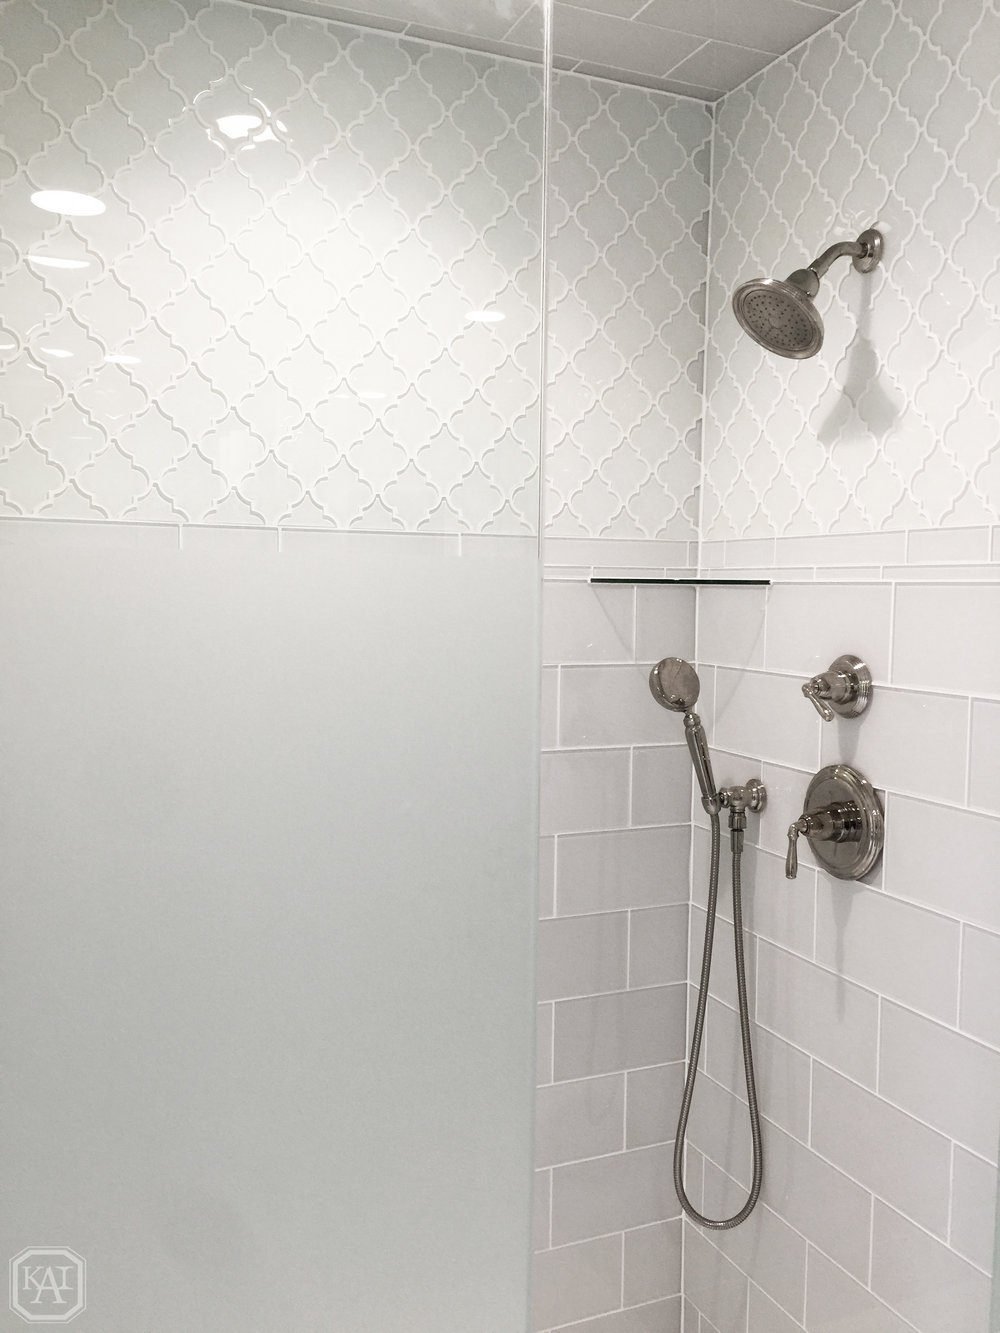 ZITELLA GIRLS SHOWER TILE_PLUMBING FIXTURES_2_FINAL.jpg